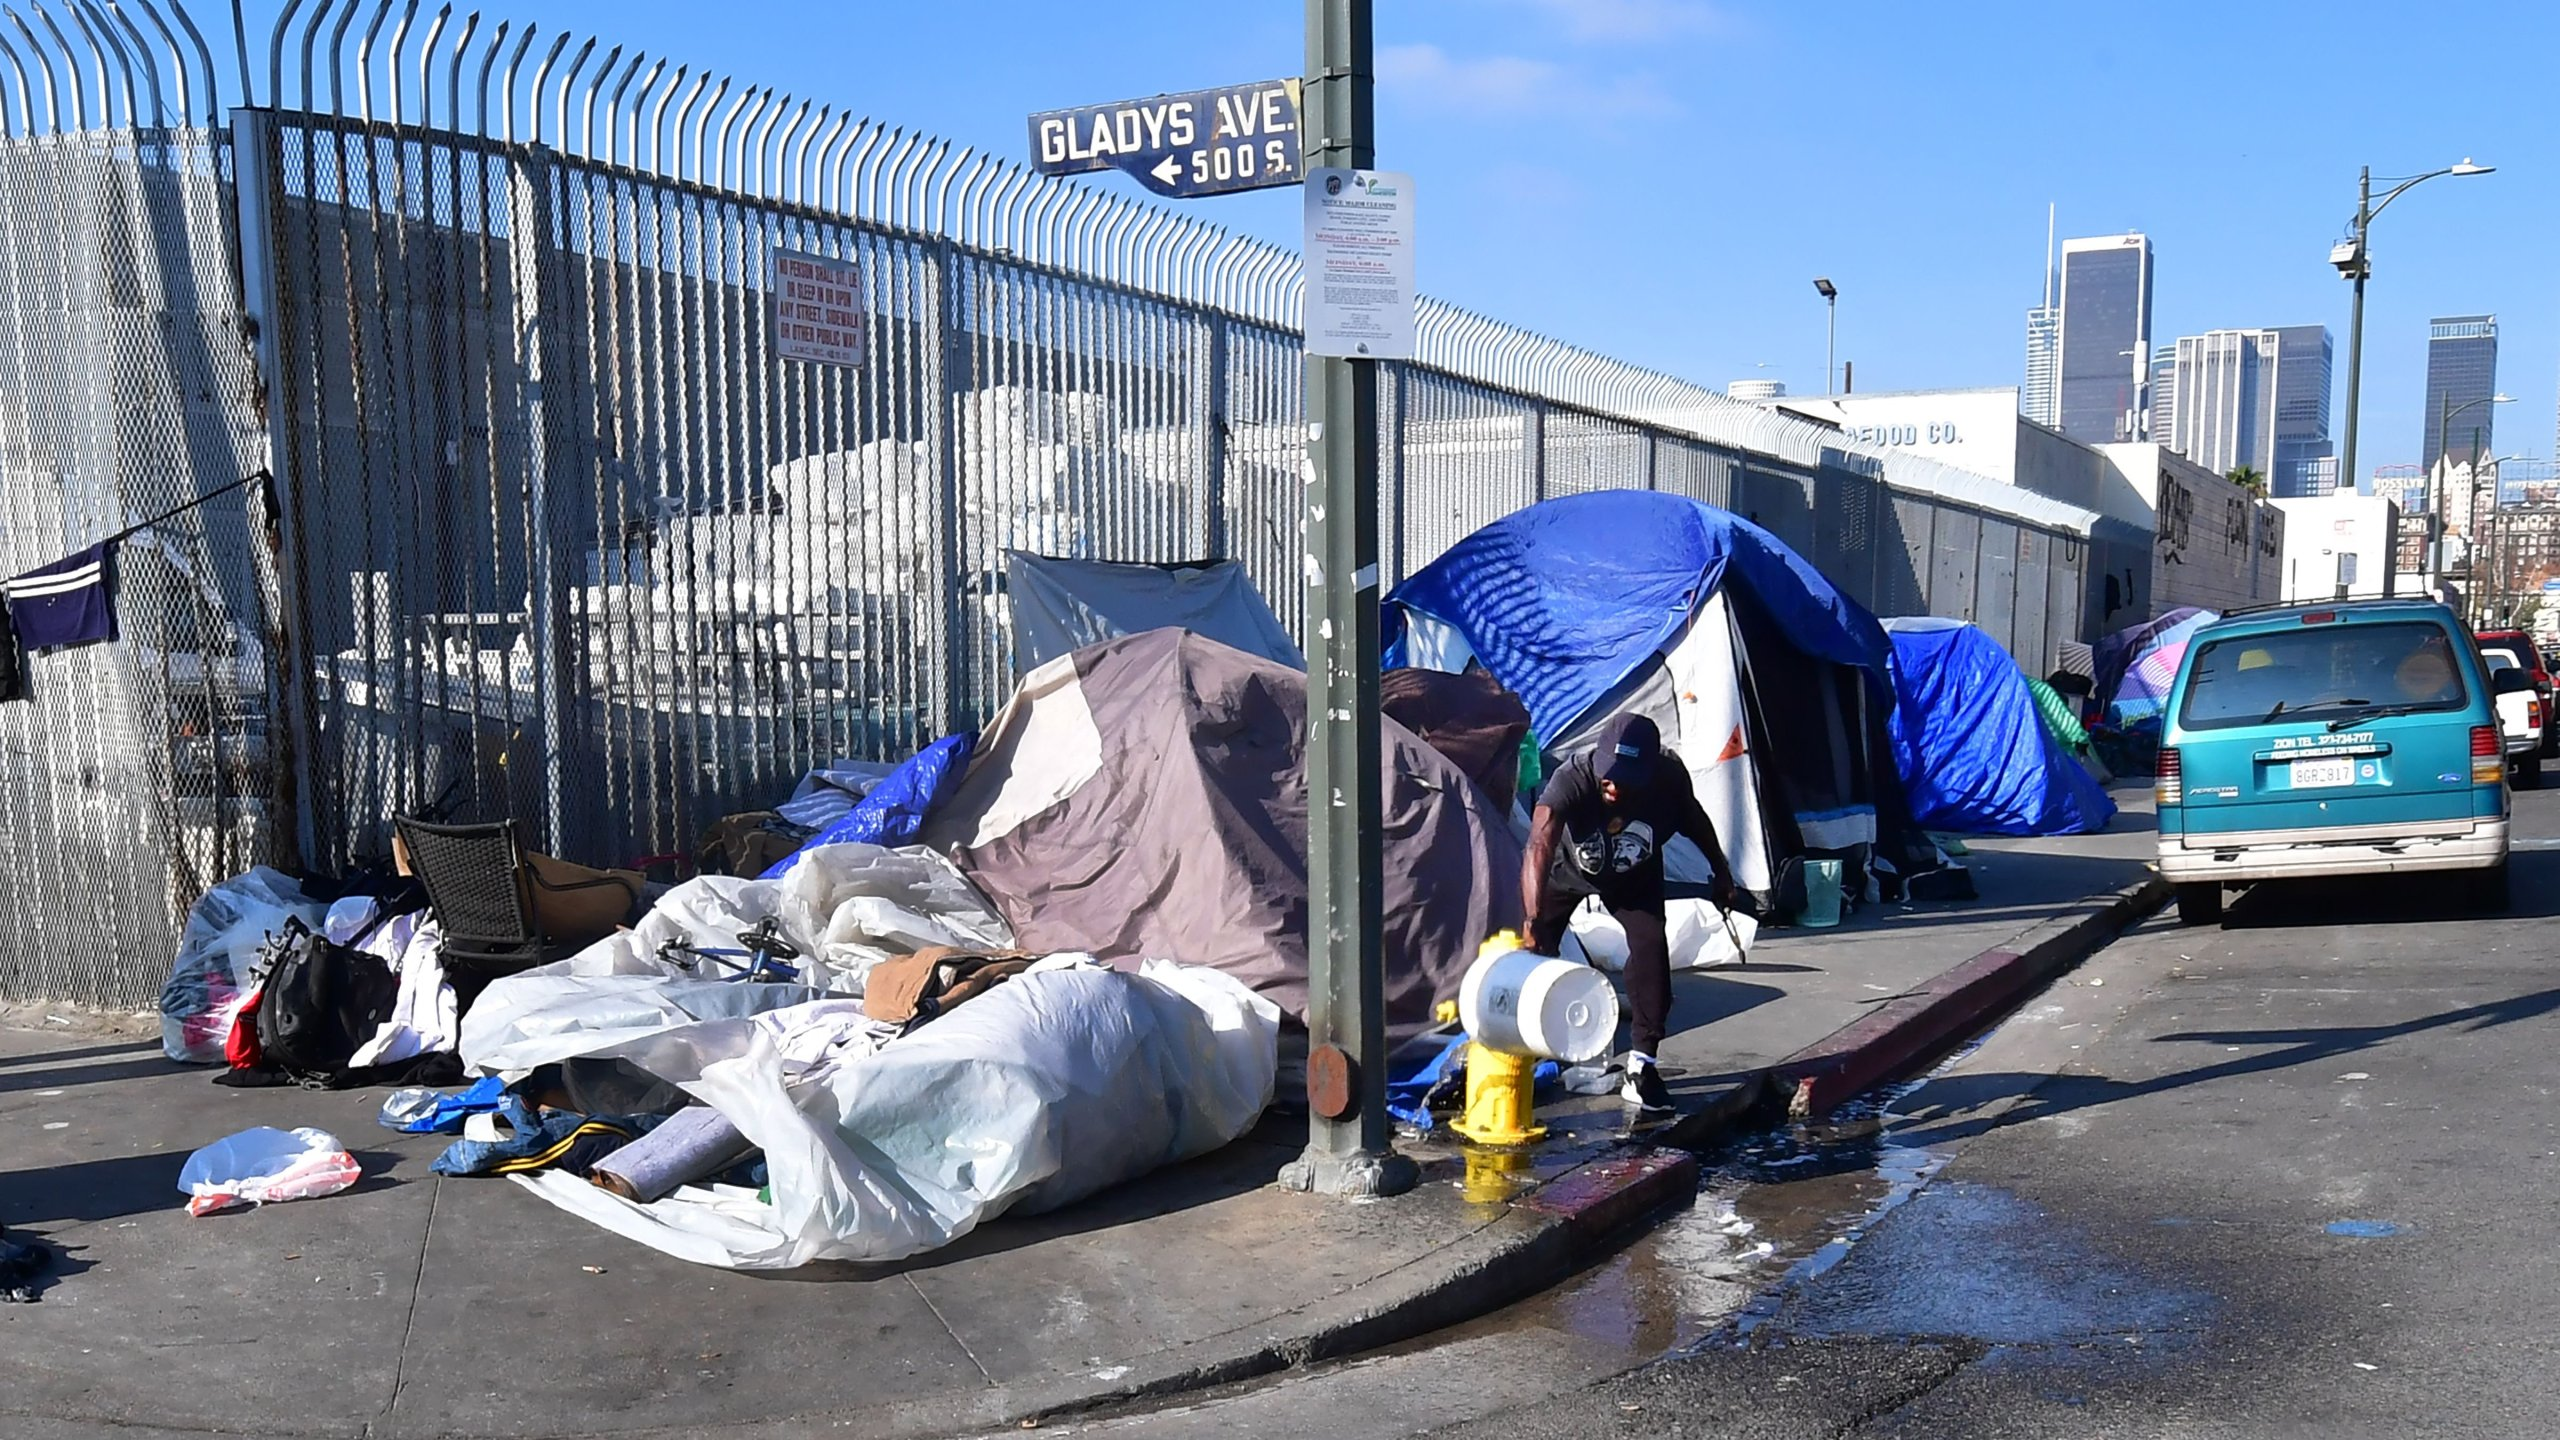 Tents of the homeless line a street corner in Los Angeles on Jan. 8, 2020. (Credit: Frederic J. Brown / AFP / Getty Images)